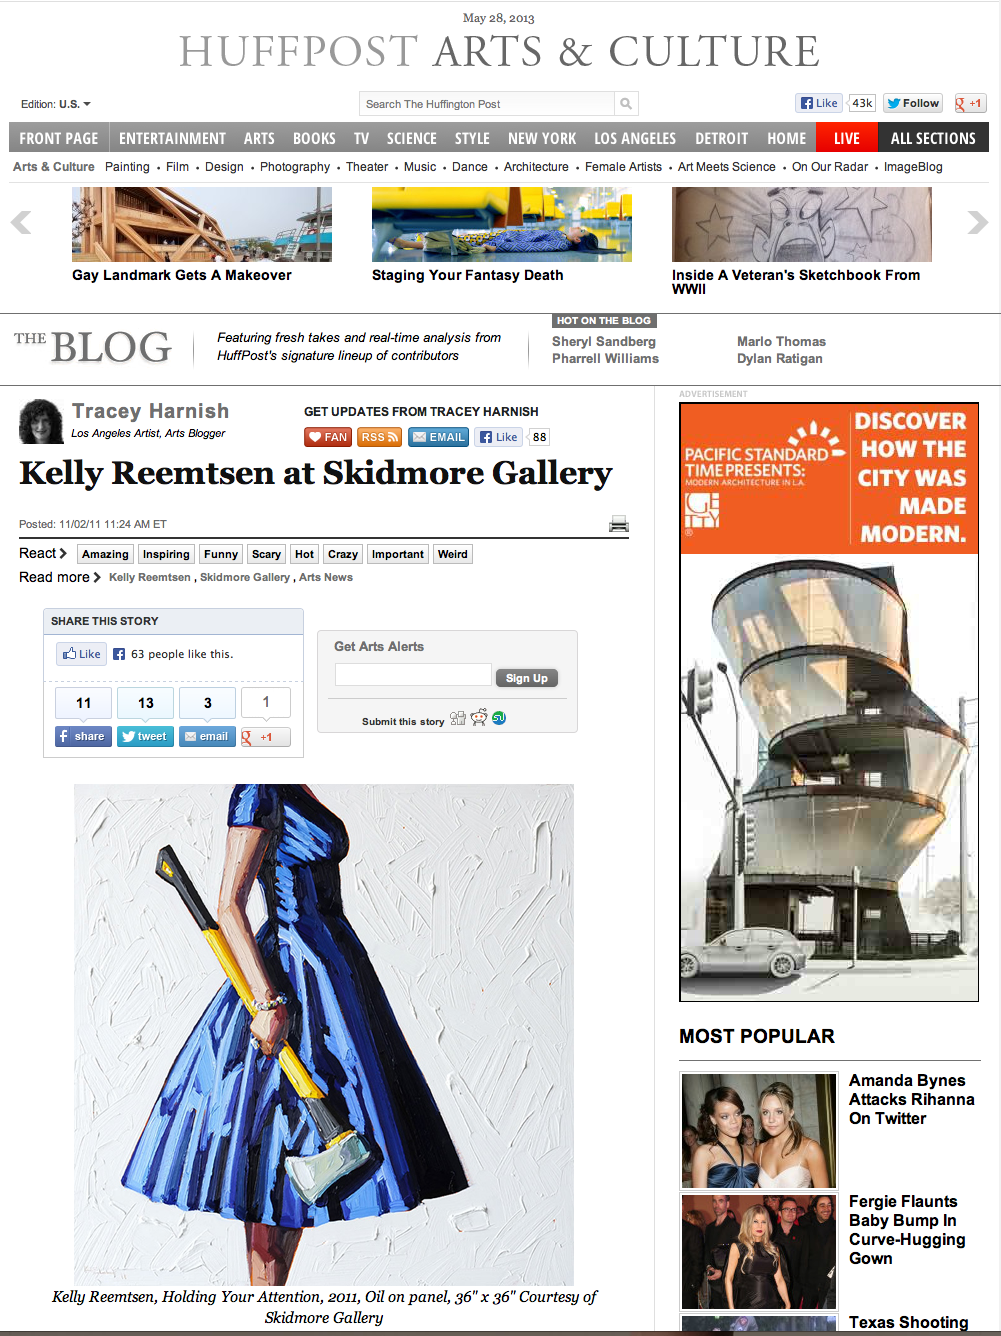 November, 2011  Huffpost, Arts & Culture - Kelly Reemtsen at Skidmore Gallery